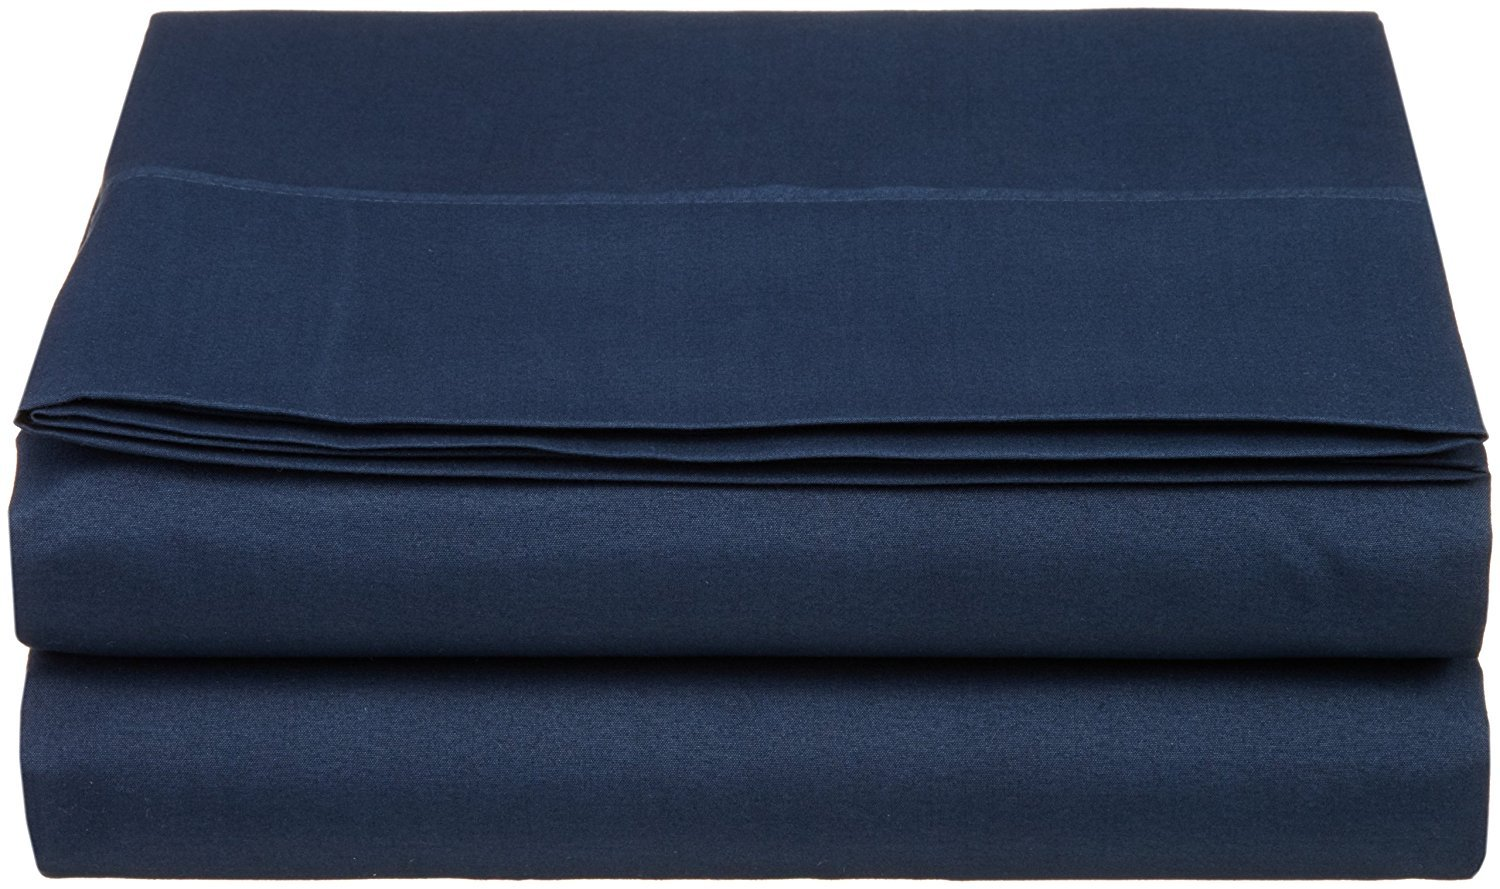 Full Size Flat Sheet 1800 Thread Count Double Brushed Microfiber Top Sheet Only - Soft, Hypoallergenic, Wrinkle, Fade, and Stain Resistant (Full, Navy Blue)